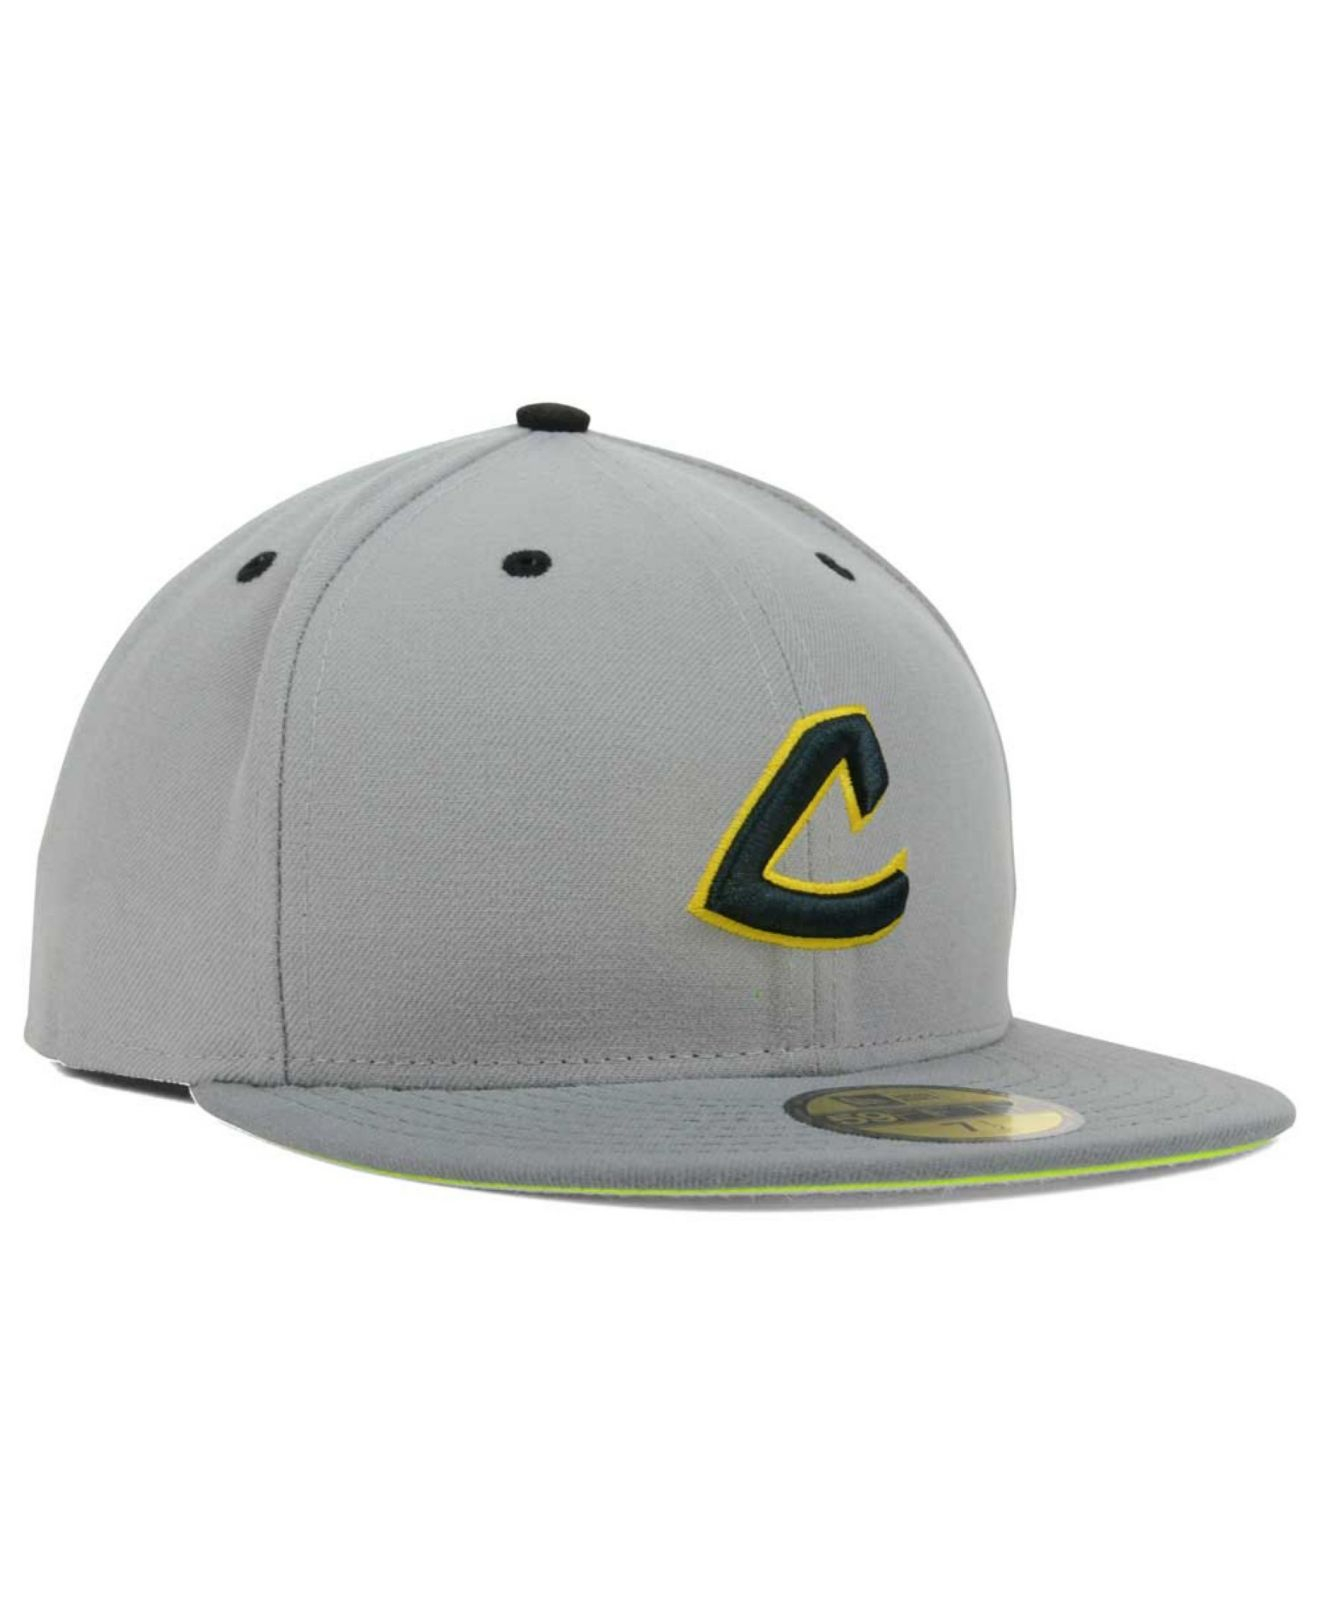 competitive price 695b7 5f2b8 Lyst - KTZ Cleveland Indians Mlb Gvolt 59fifty Cap in Gray for Men